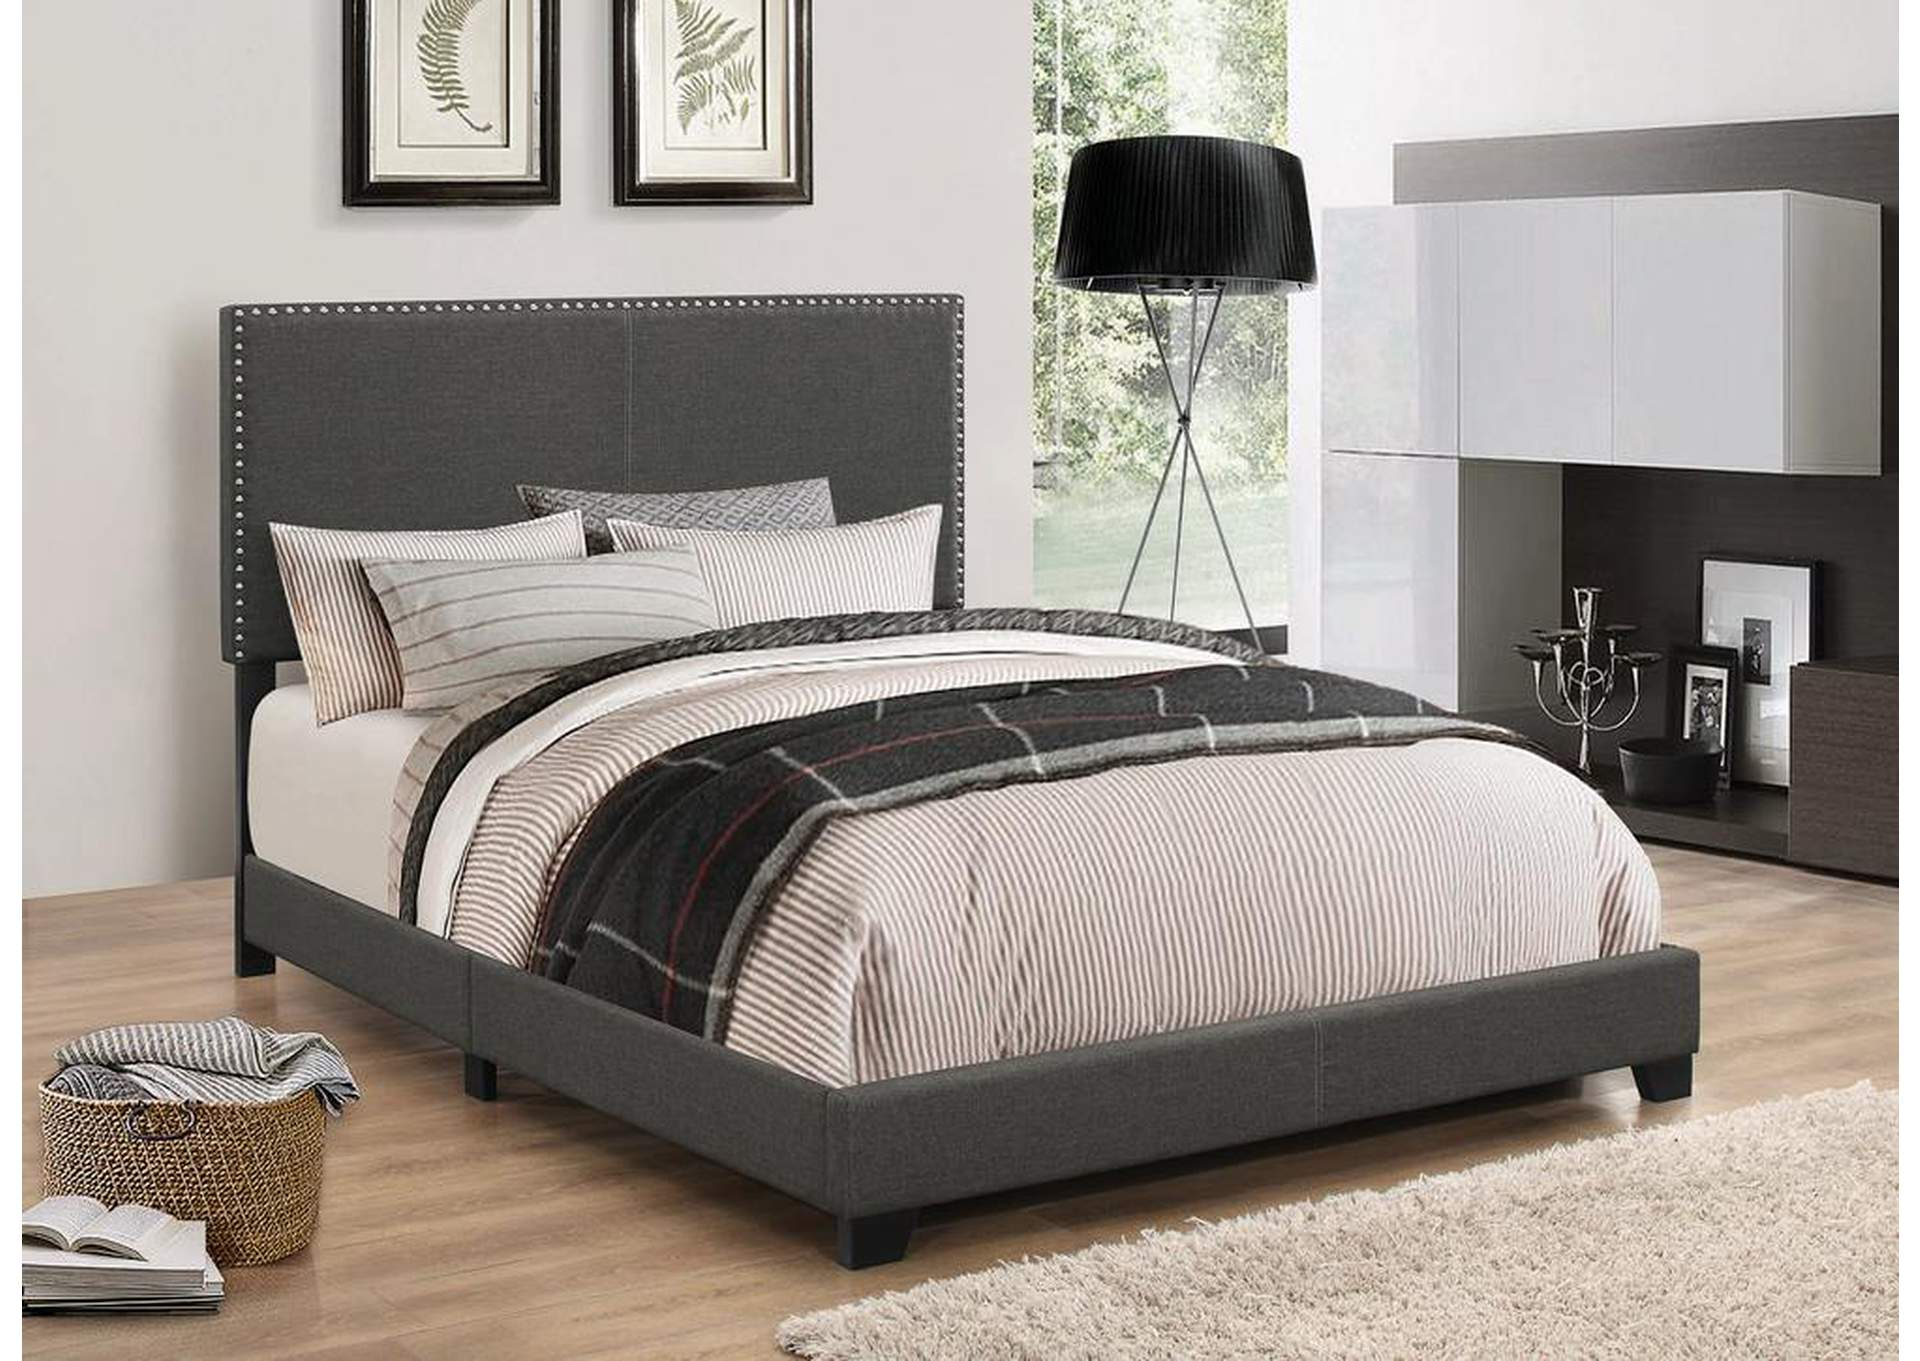 Charcoal Upholstered Queen Bed,Coaster Furniture